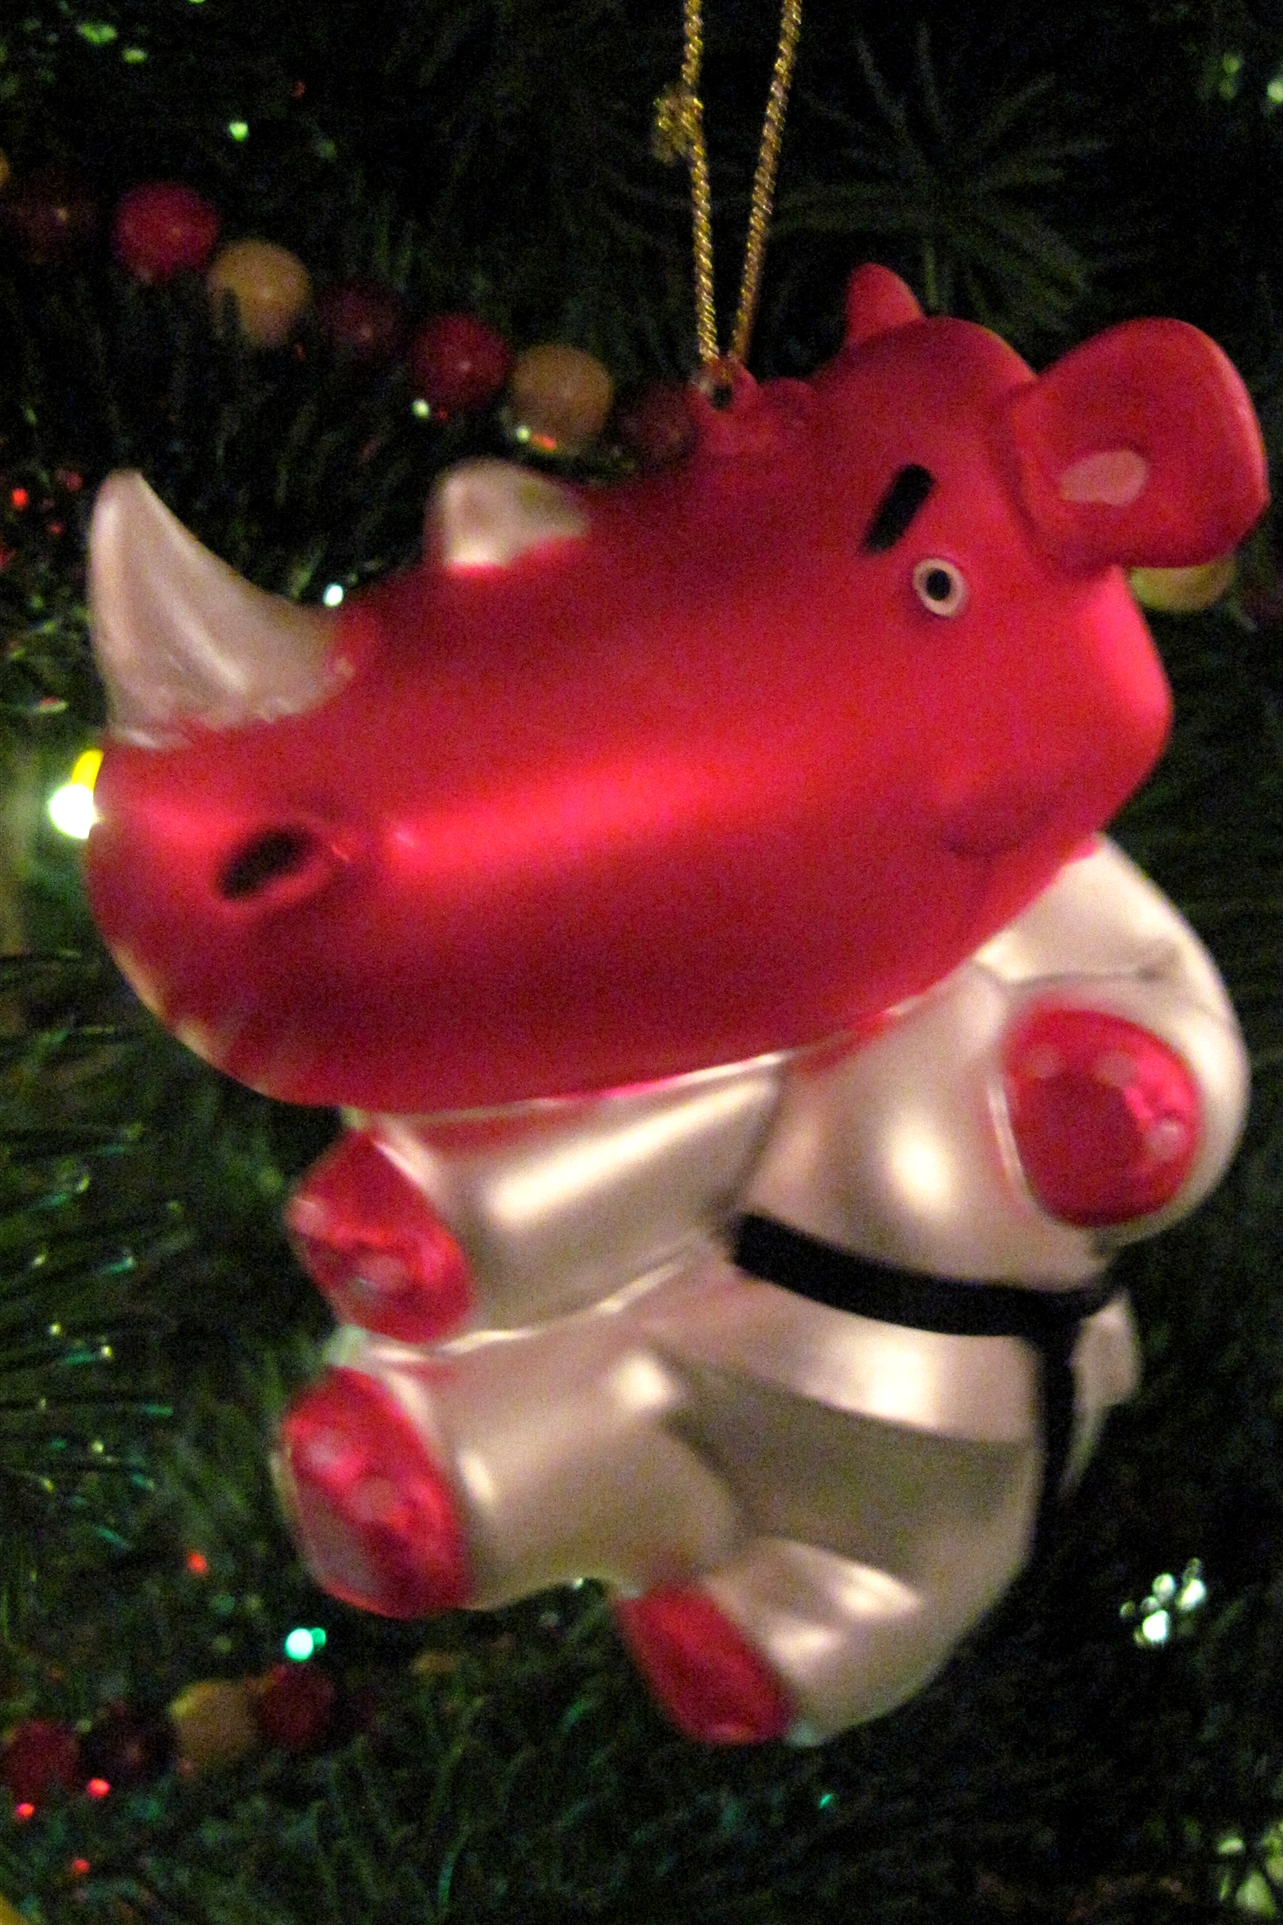 Pig christmas ornaments - We Got These Felt Ornaments In Budapest Back In 1990 The Mischievous Devil Boy Is Called The Krampusz He Travels With St Nicholas And Gives Switches Of